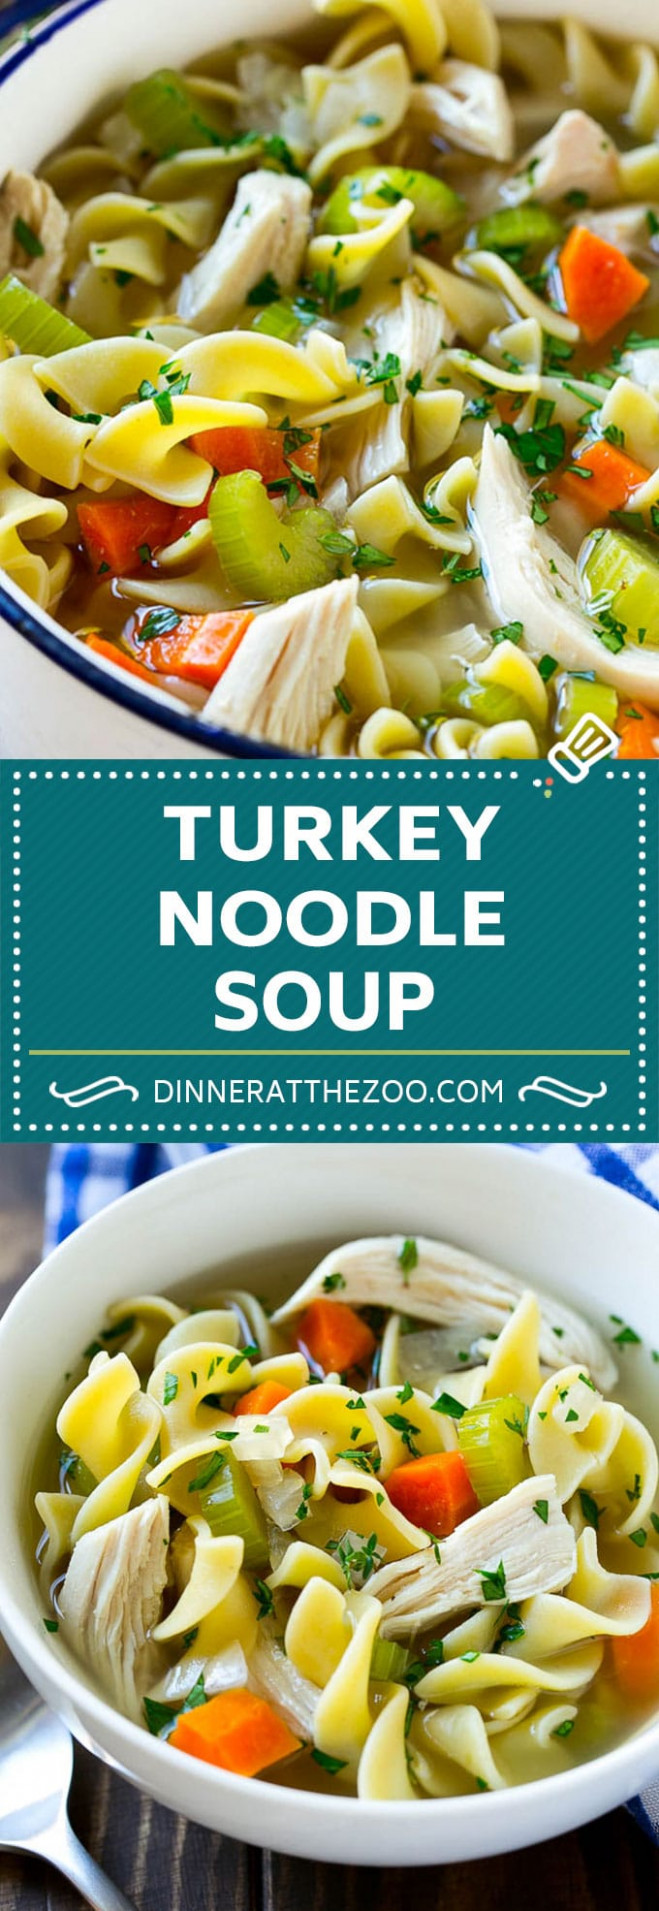 Turkey Noodle Soup - Food Recipes For Dinner